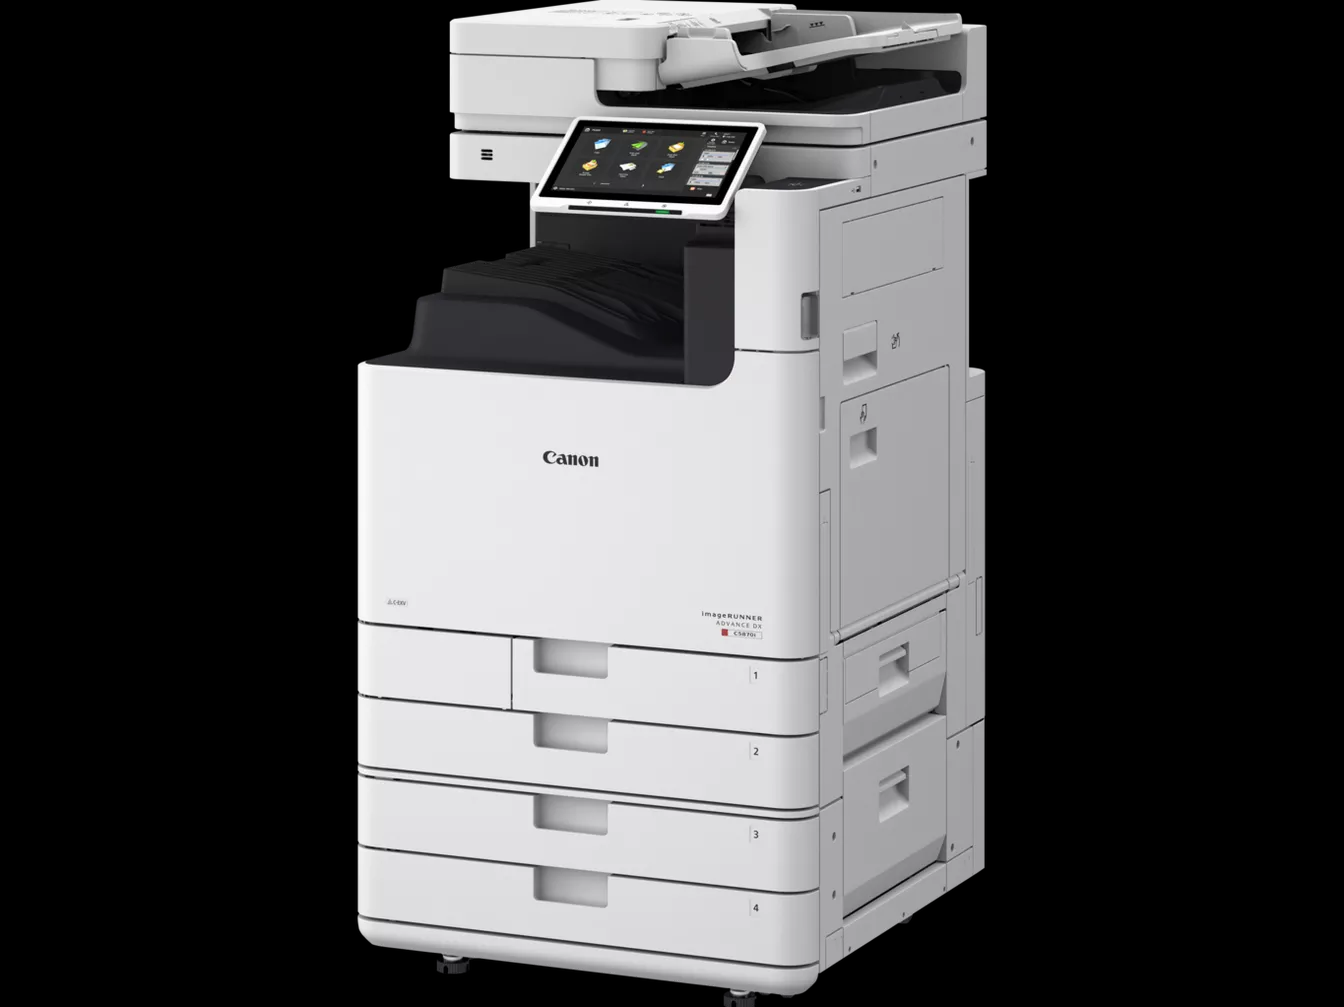 Canon imageRUNNER advance DX C5840i A3 Colour MFD Photocopier Printer Scanner